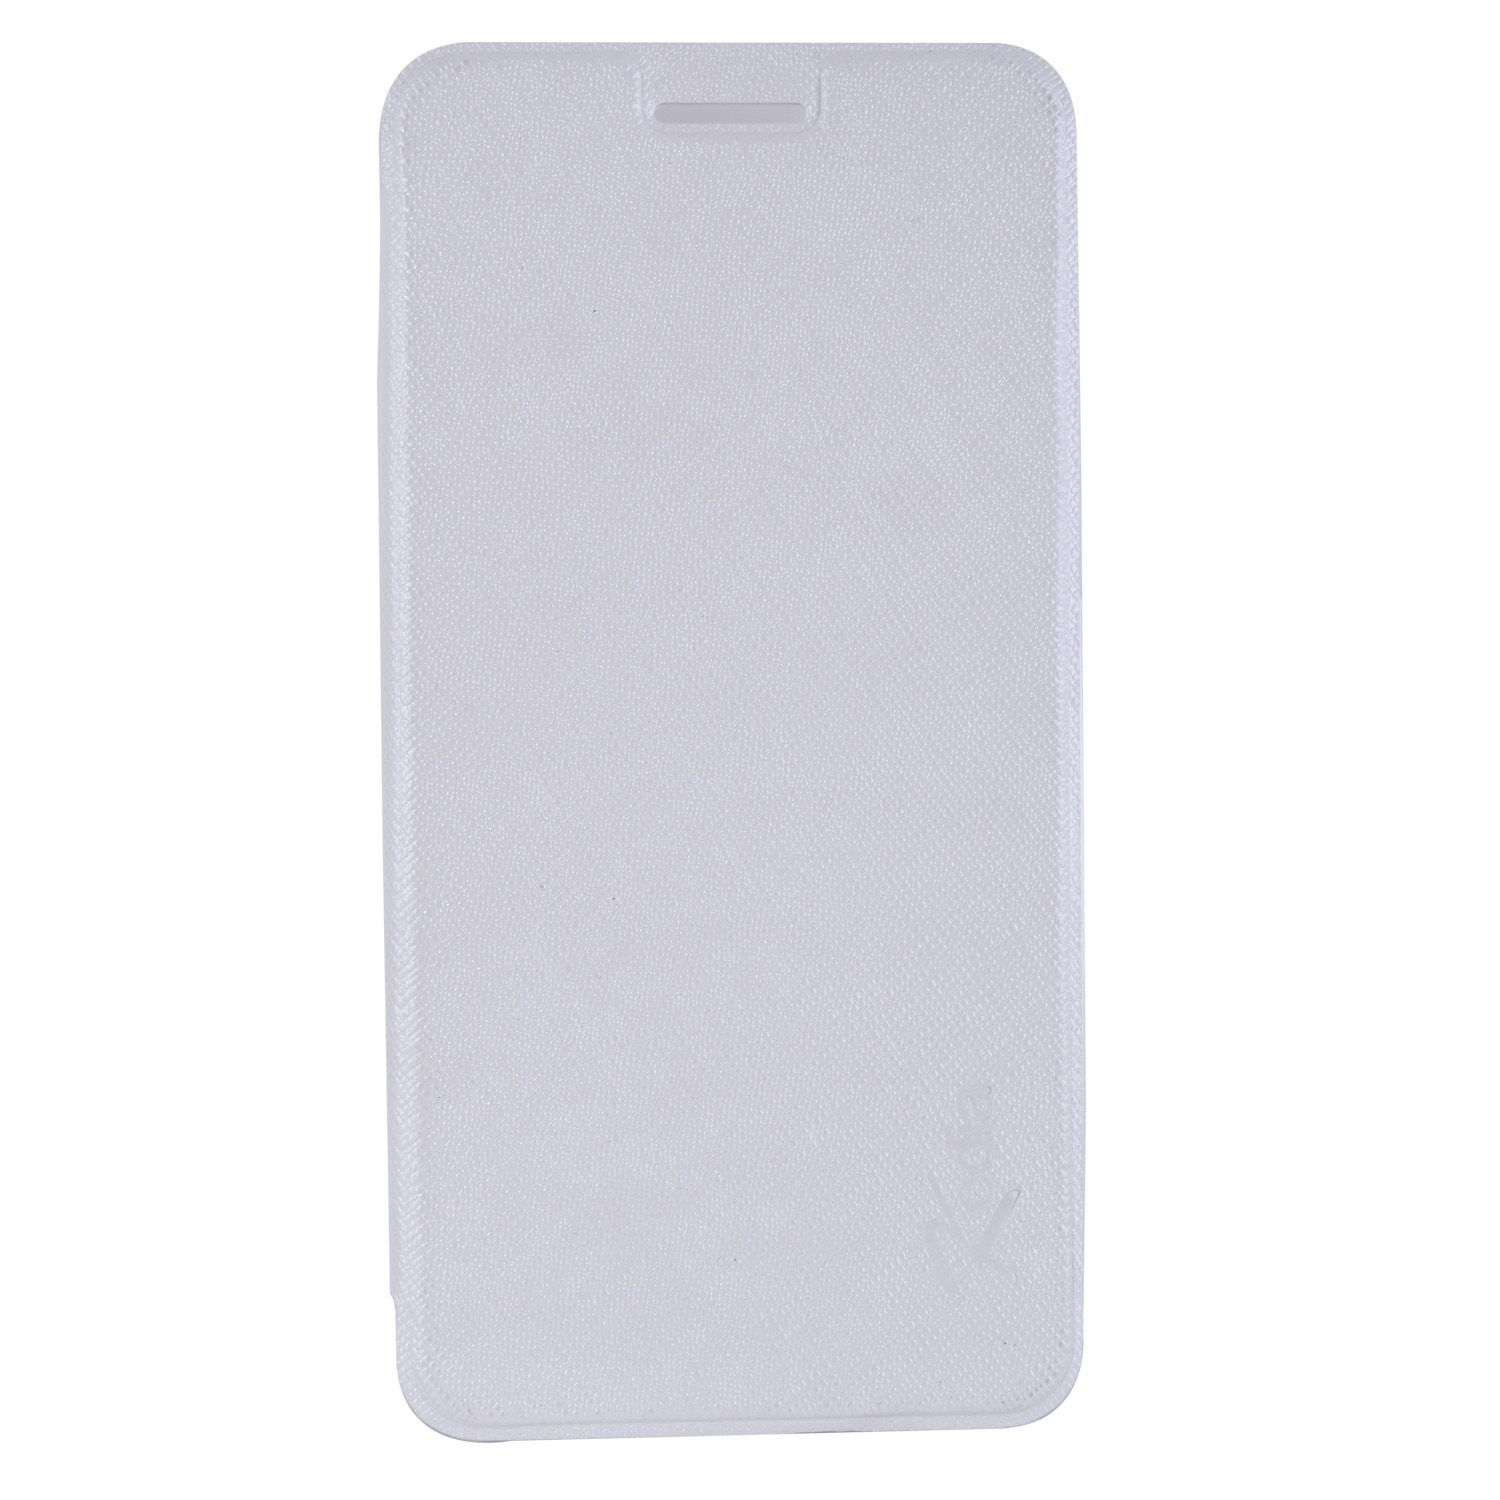 Micromax Canvas Spark Q380 Flip Cover by Cell Mates - White